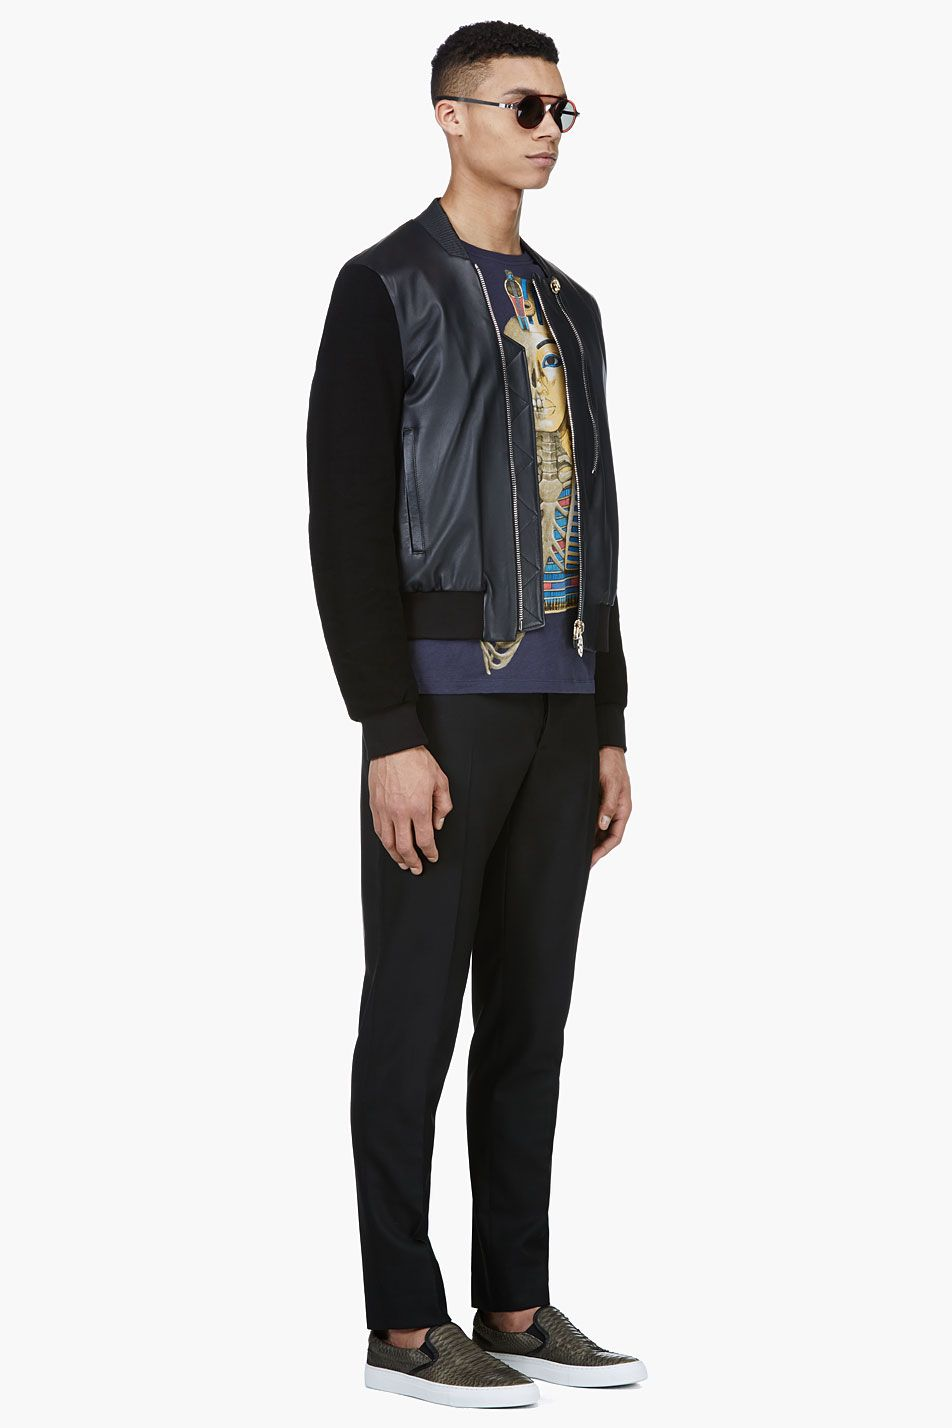 Paul Smith Jeans for Men SS20 Collection